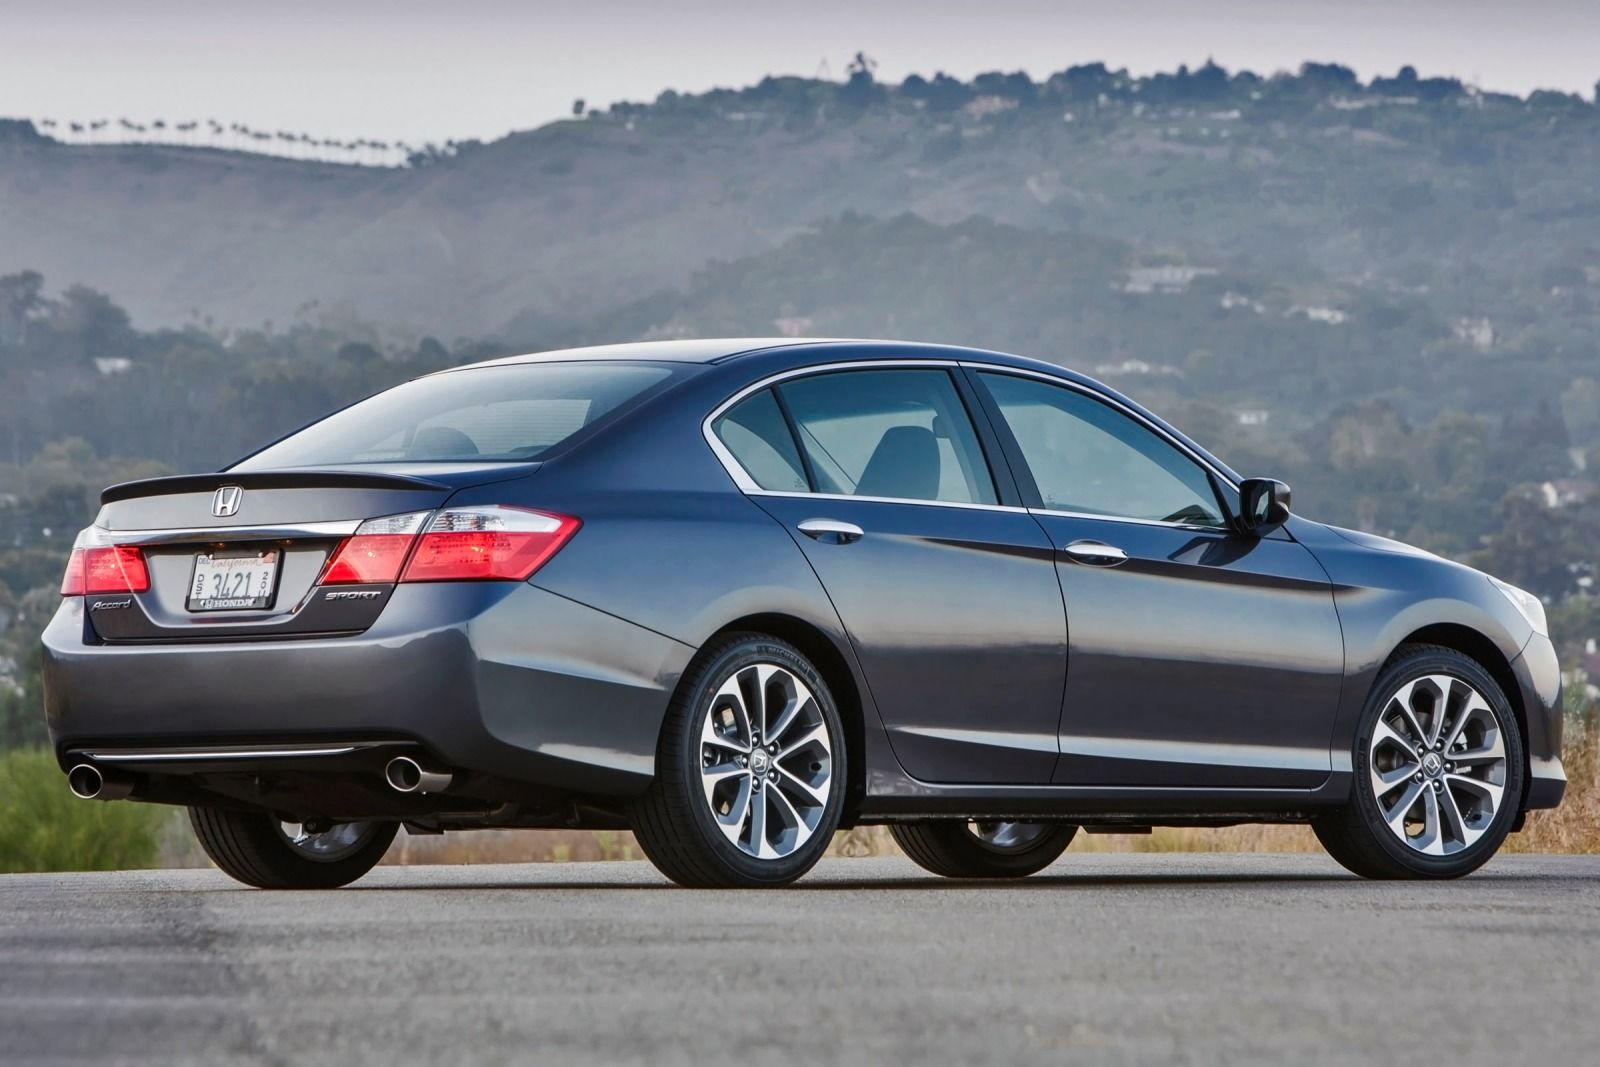 2015 Honda Accord #7